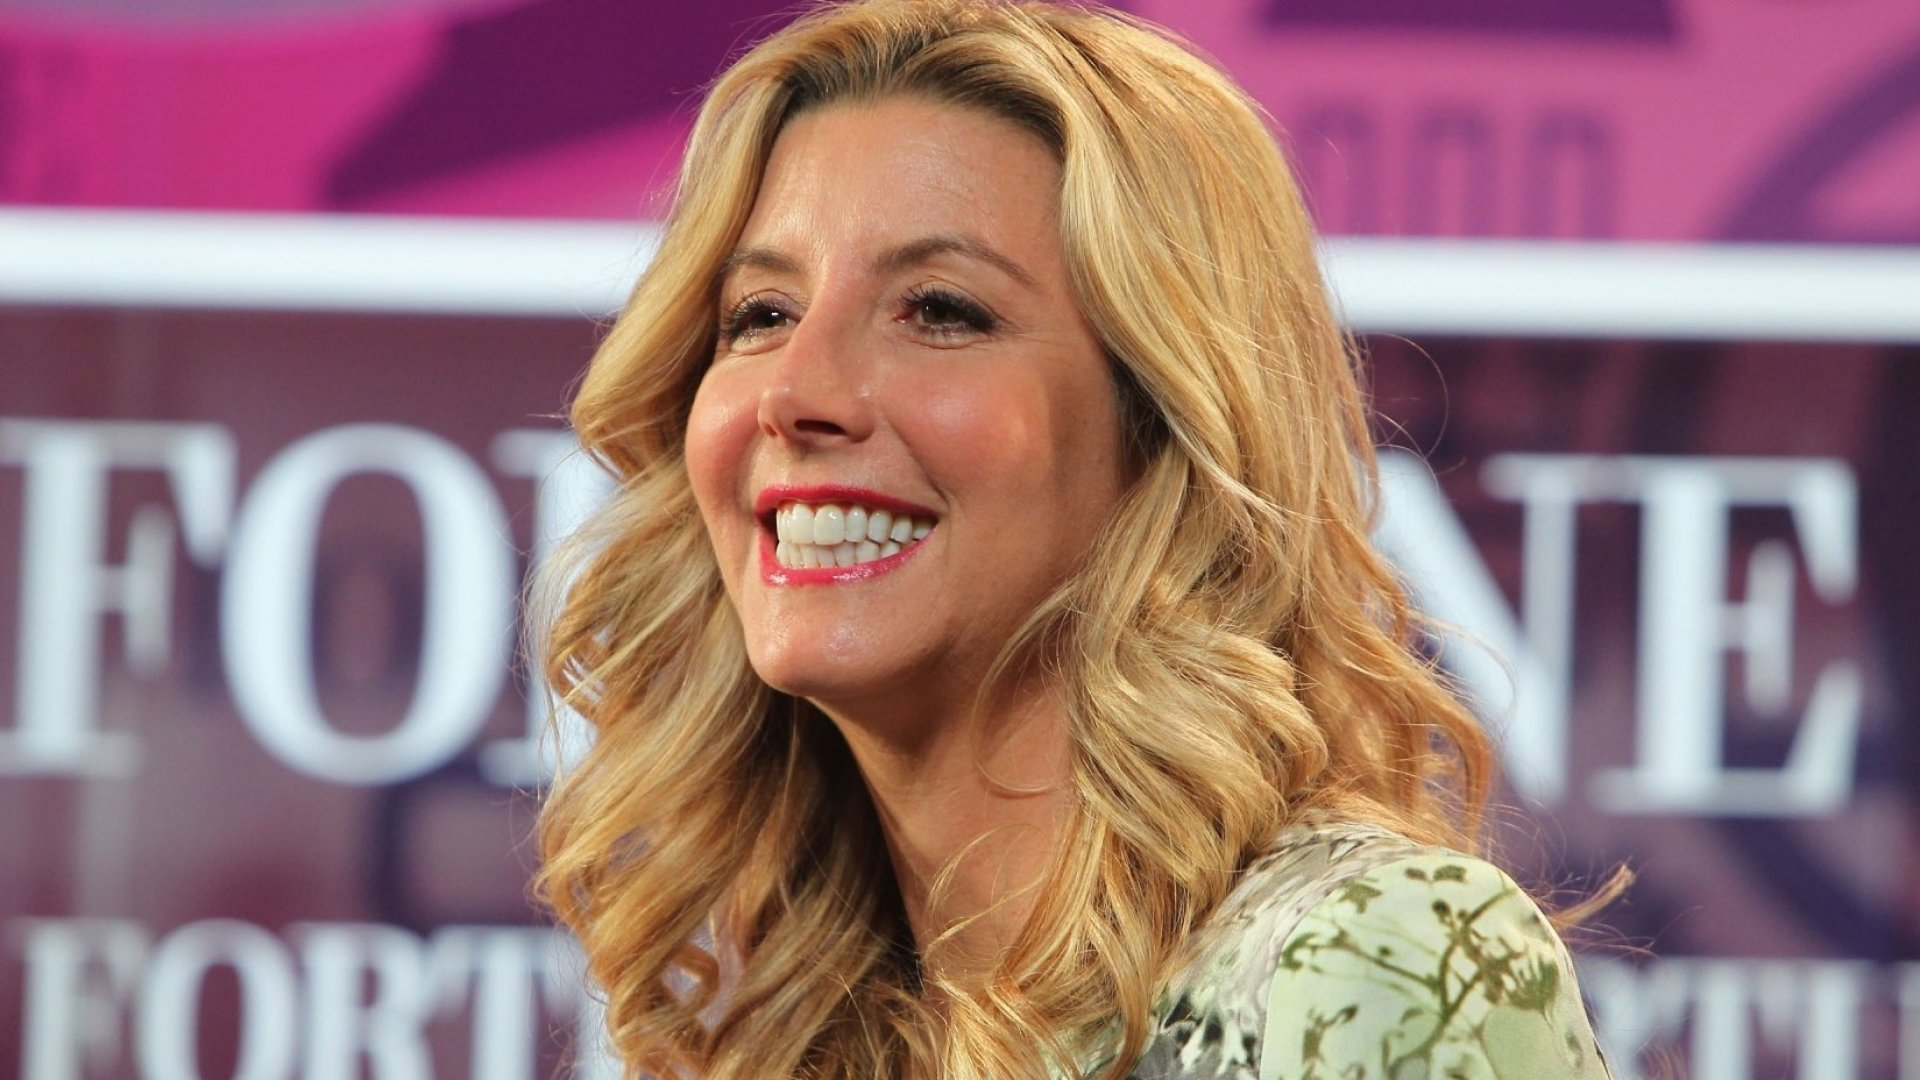 22 Inspiring Quotes From Self-Made Billionaire Sara Blakely About Success and Building a Business